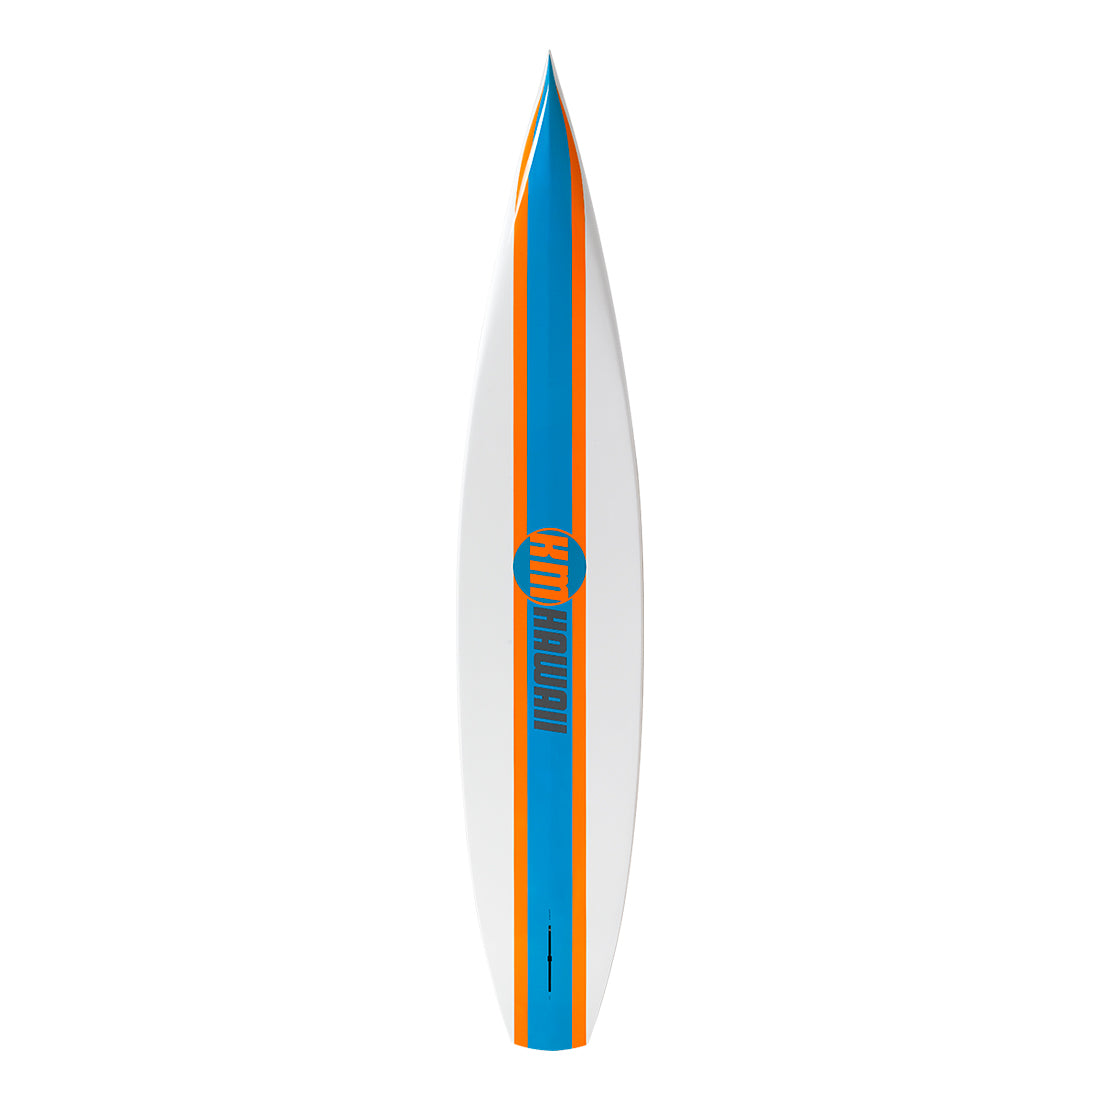 "KM Hawaii Compressor Tour - Blue-Orange - 14'0"" x 27.5"" Touring Standup Paddle Board Paddle Boards 4theoutdoors America US USA SUP outdoors"